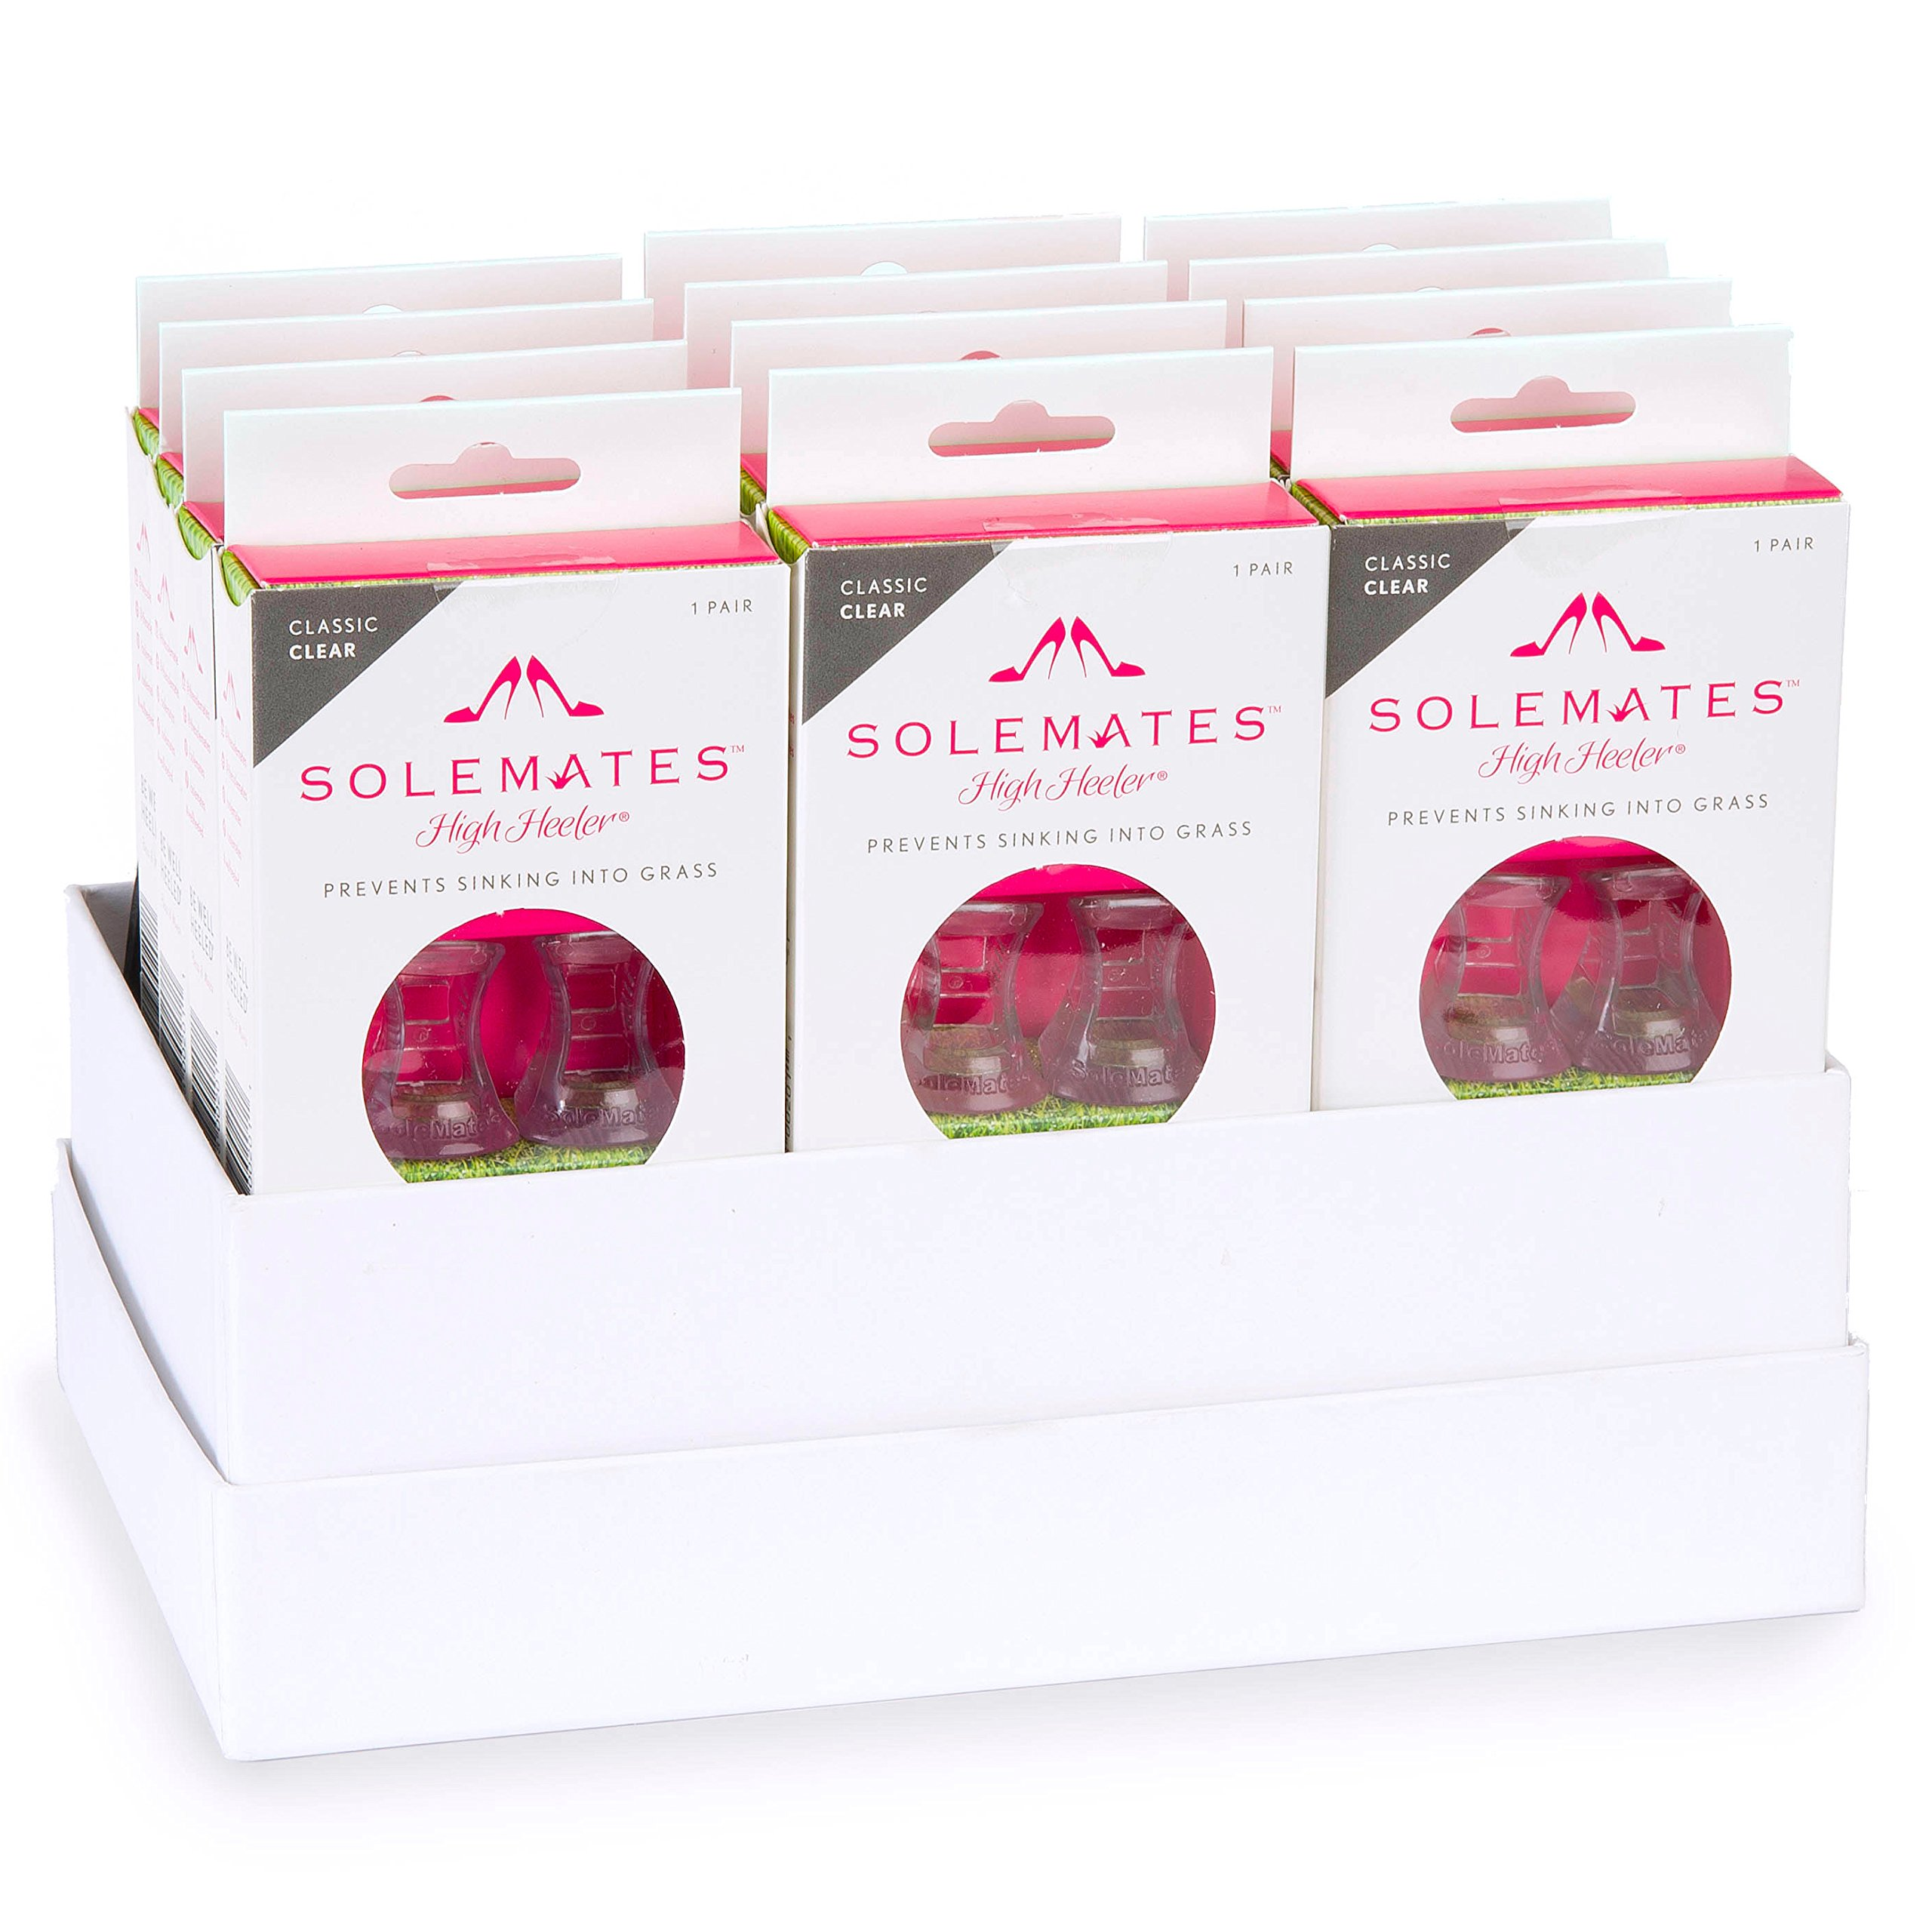 Heel Protectors by Solemates. The Bridal Bundle; 12 Packs of Classic Clear